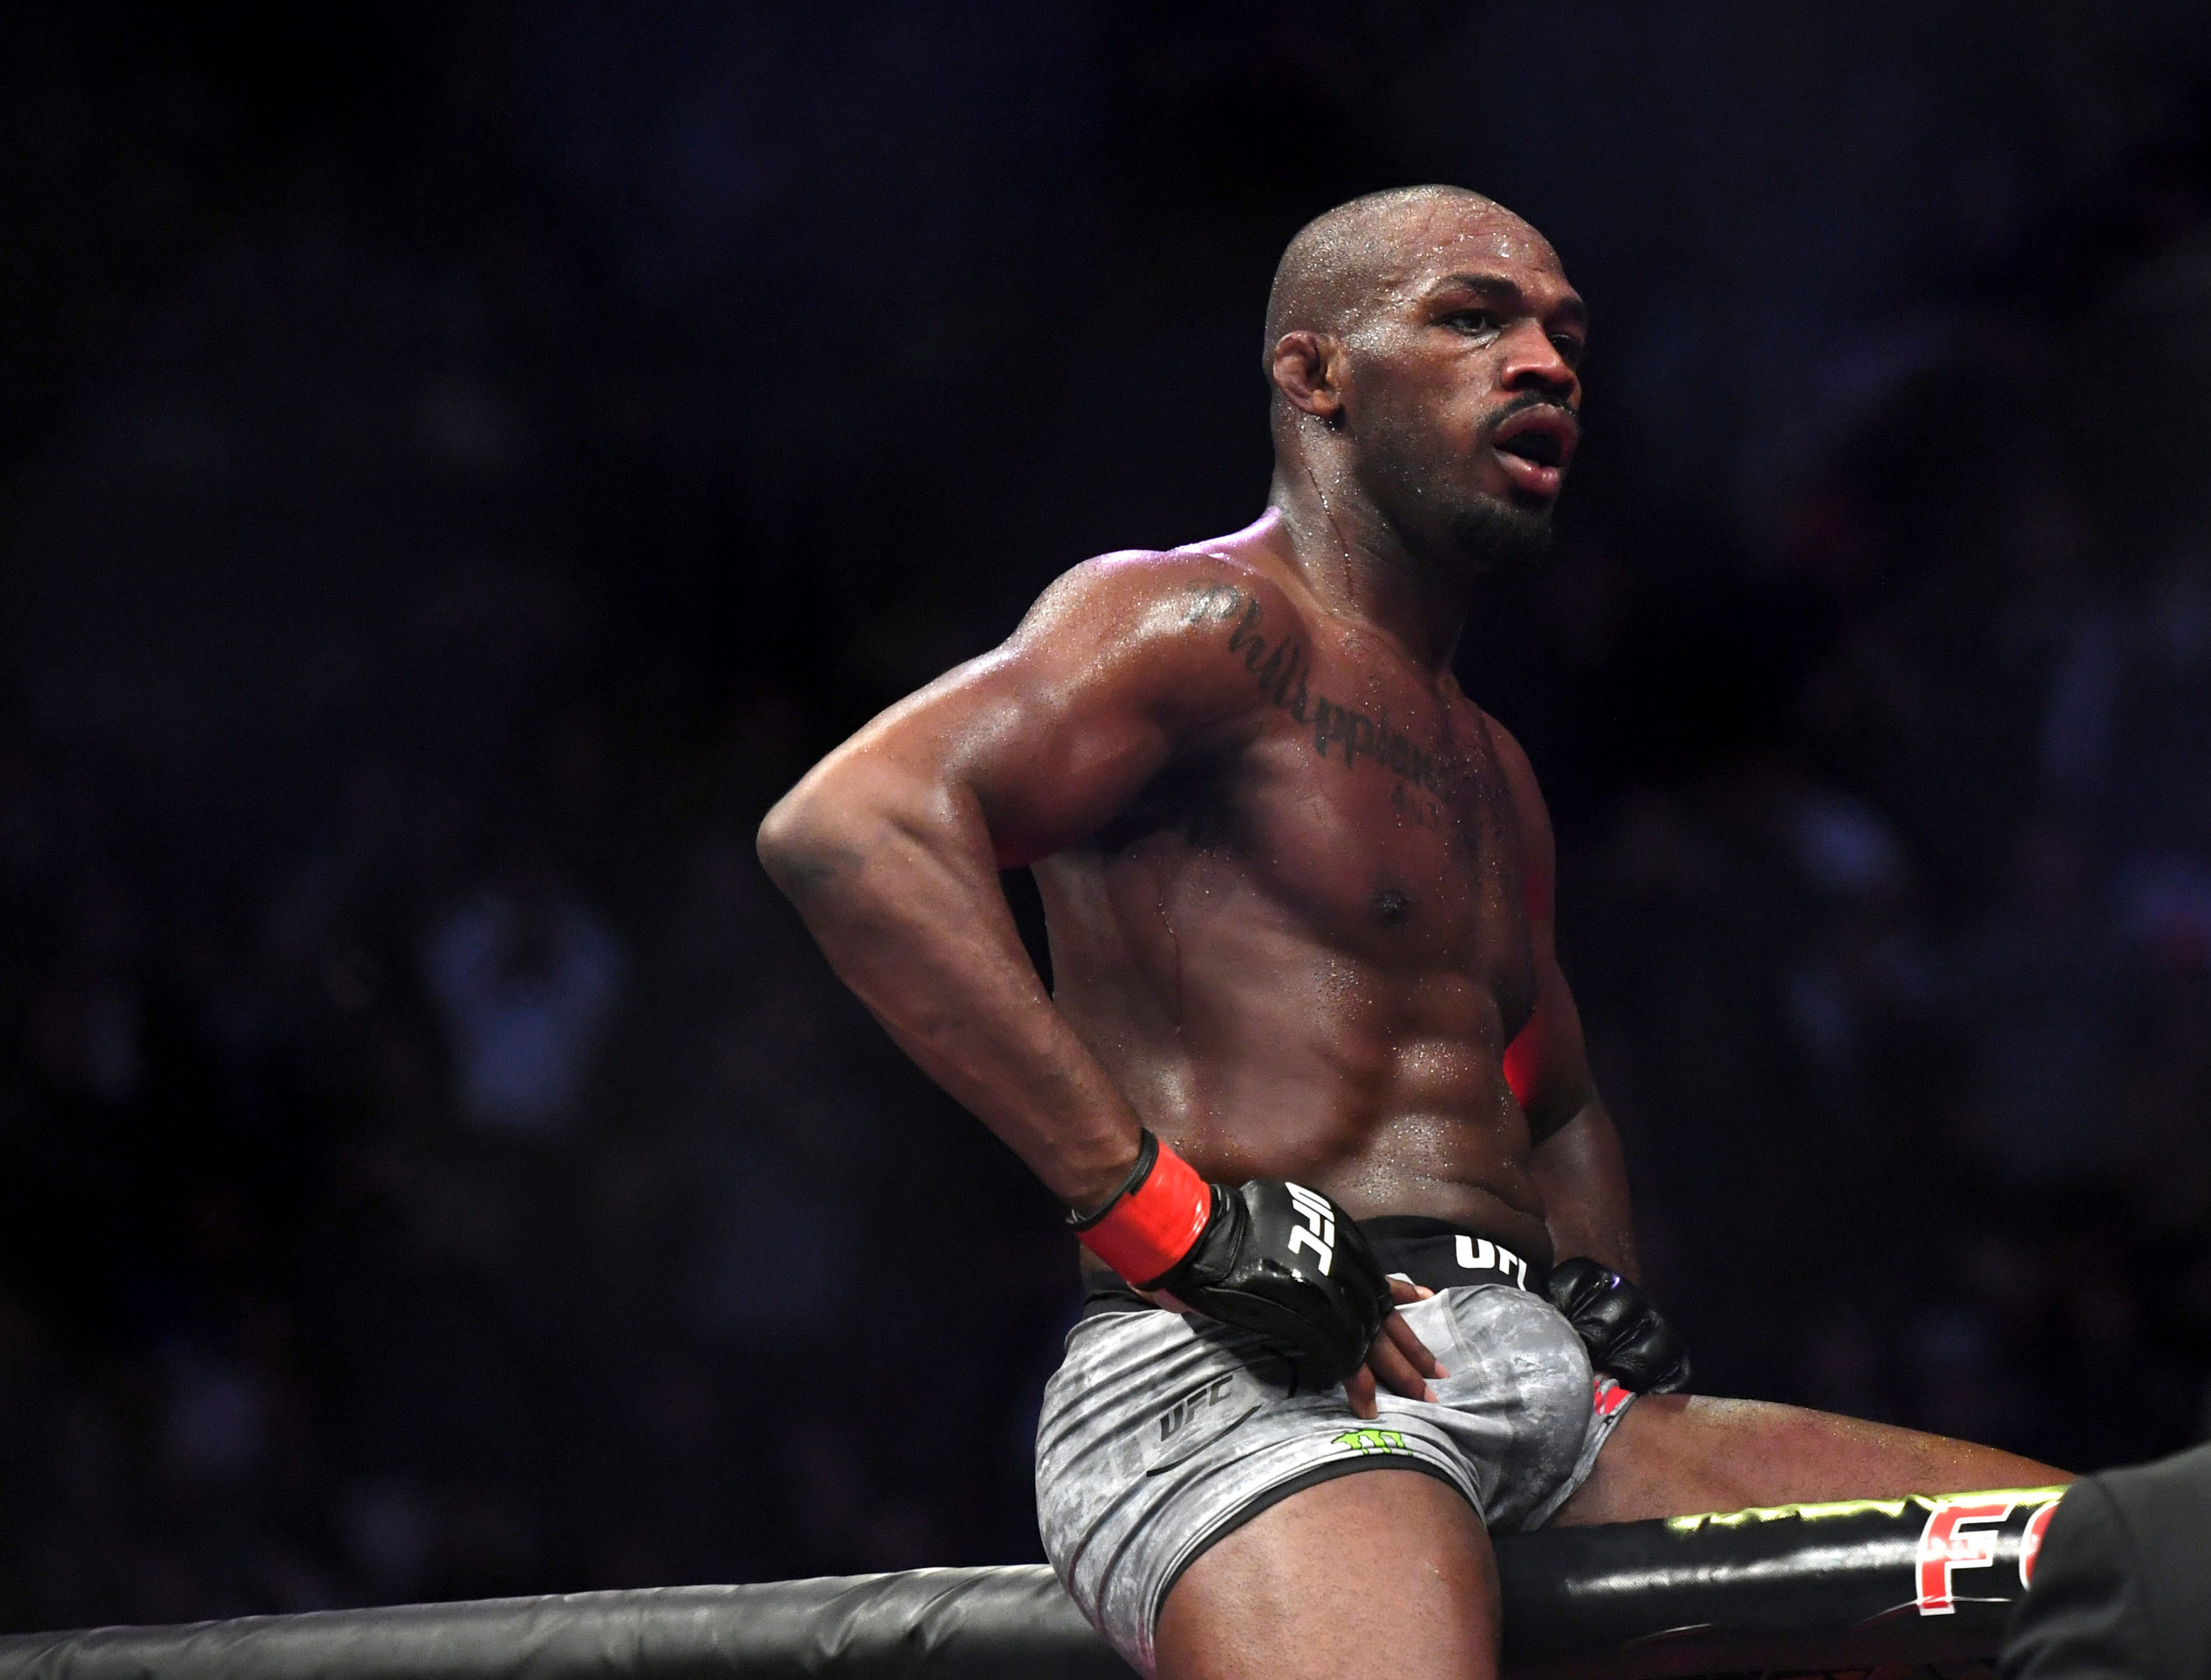 Jon Jones goes up on top of the octagon after defeating Alexander Gustafsson in the UFC men's light heavyweight mixed martial arts bout at UFC 232, Saturday, Dec. 29, 2018, in Inglewood, Calif. (AP Photo/Kyusung Gong)